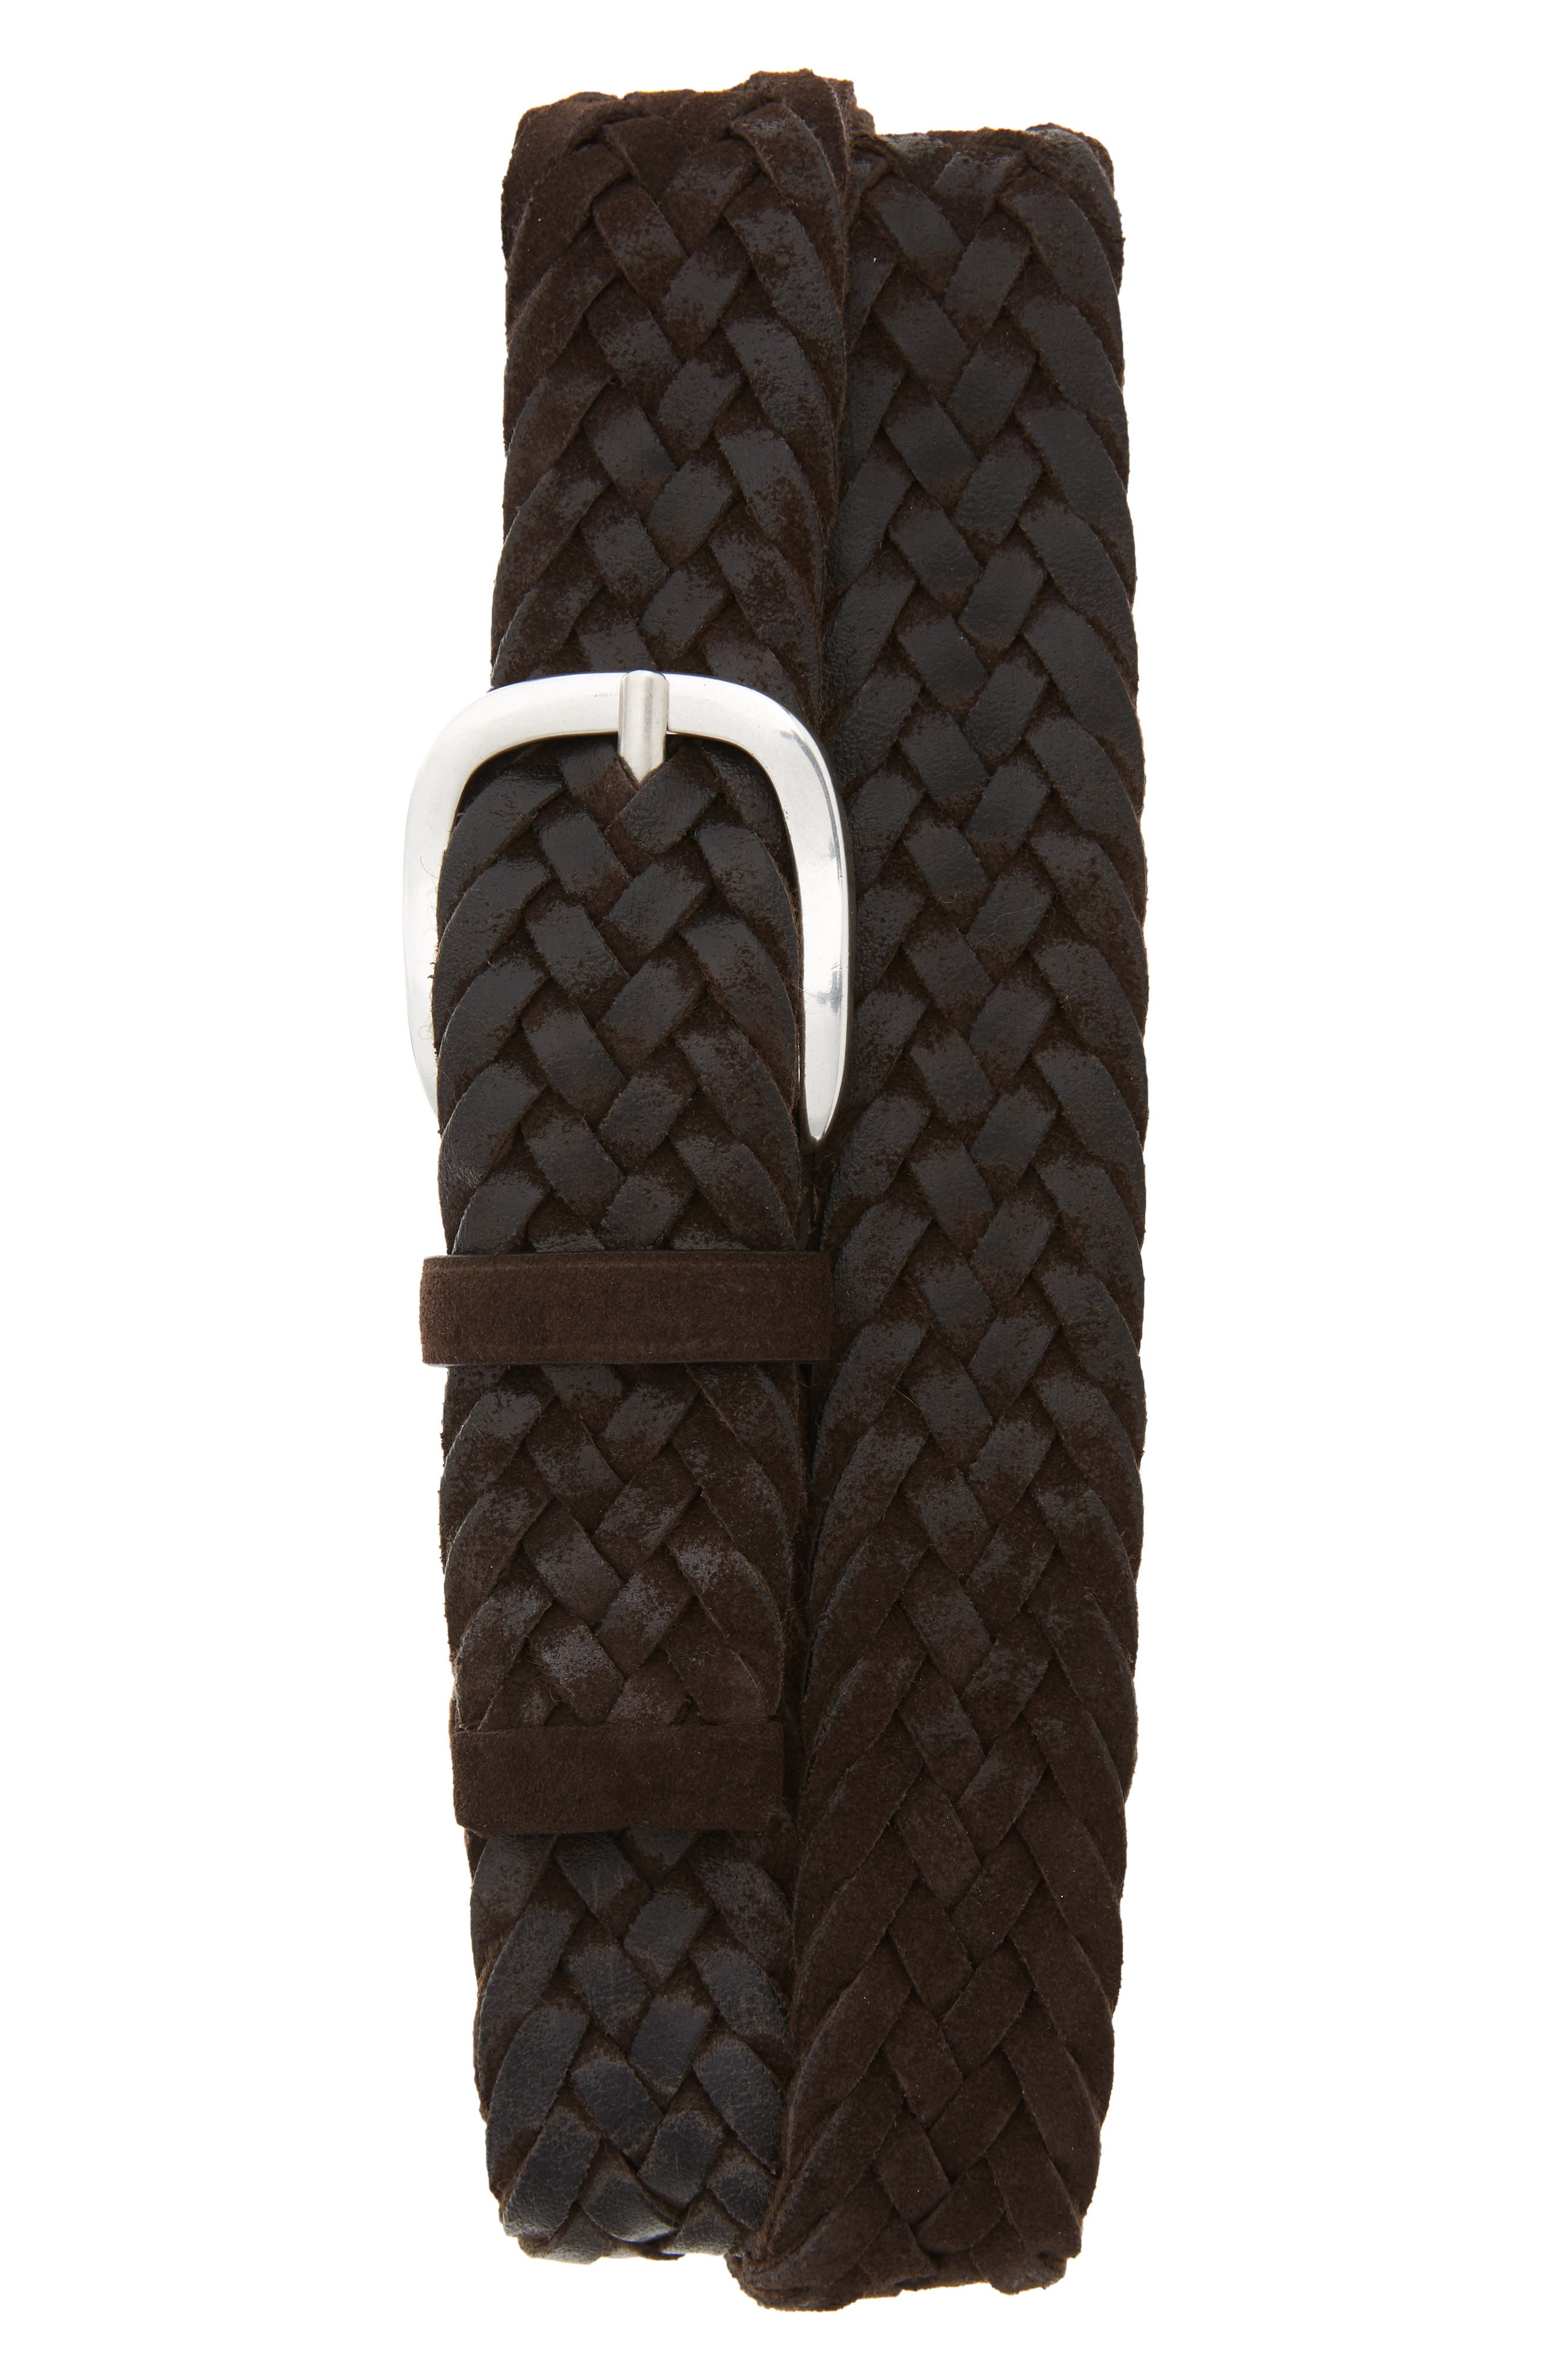 ORCIANI, Winter Suede Woven Belt, Main thumbnail 1, color, 200